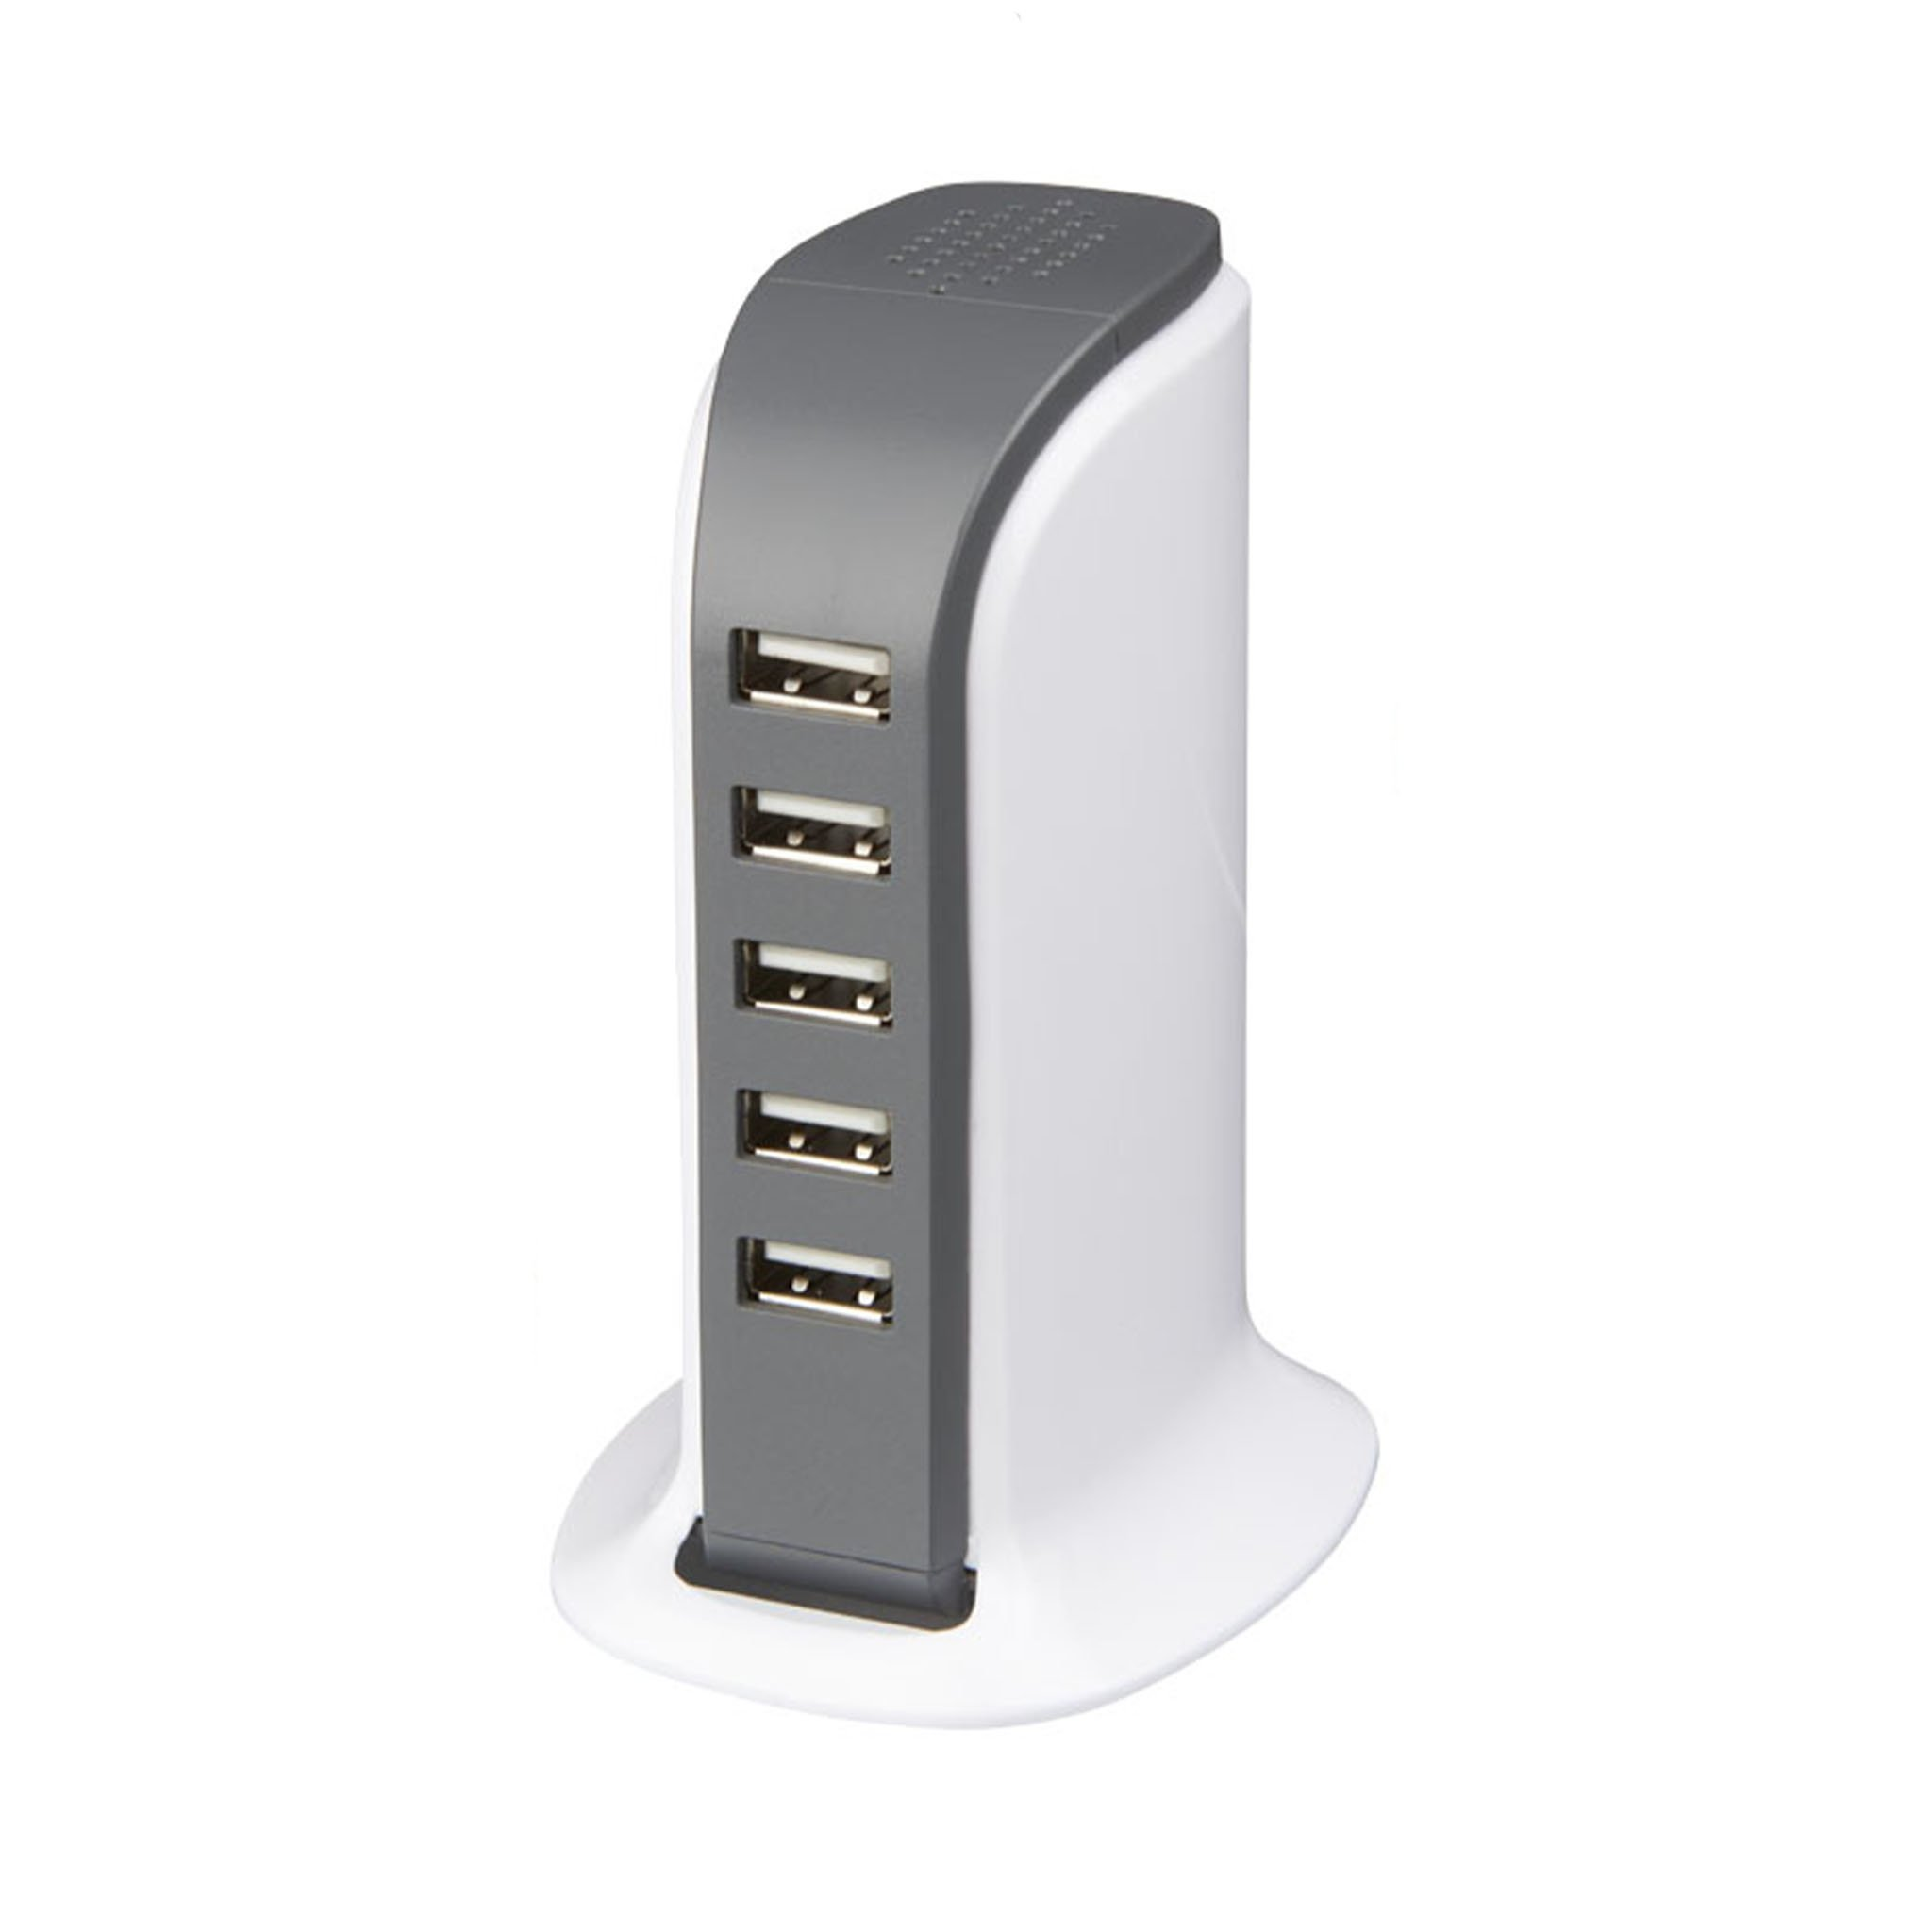 Tower desktop AC adapter with 5 USB ports